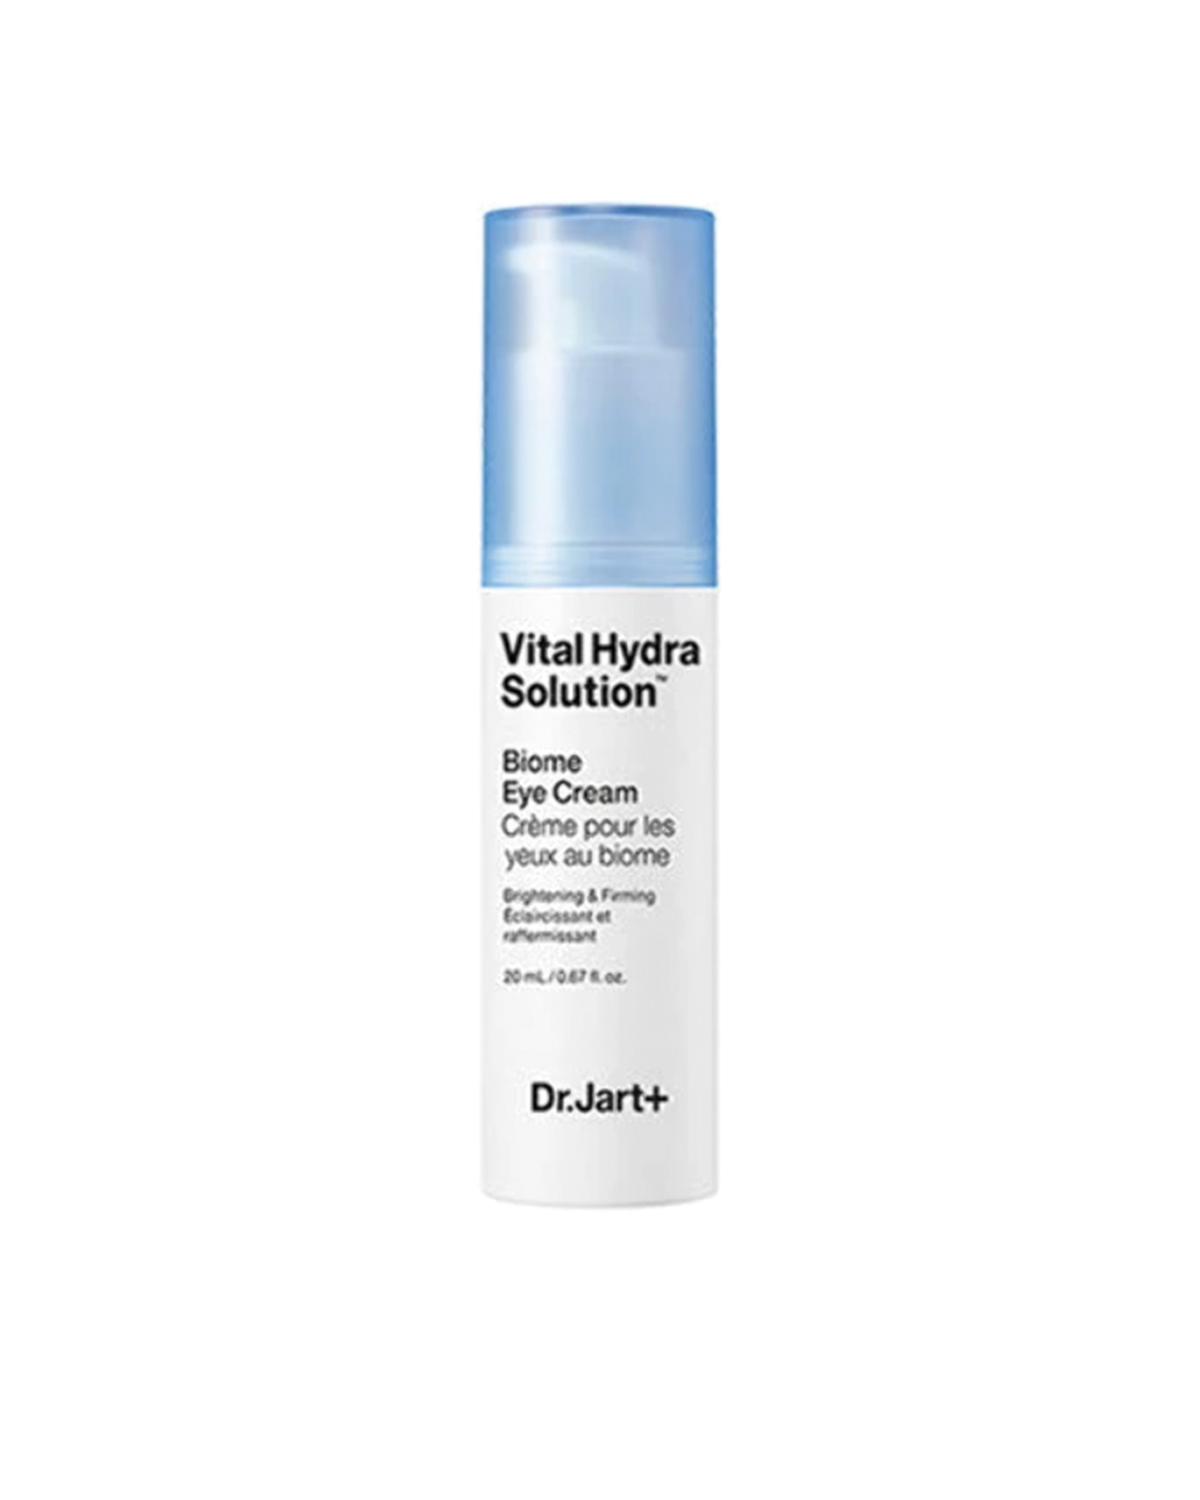 DR.JART+ Vital Hydra Solution Biome Eye Cream 20 ml